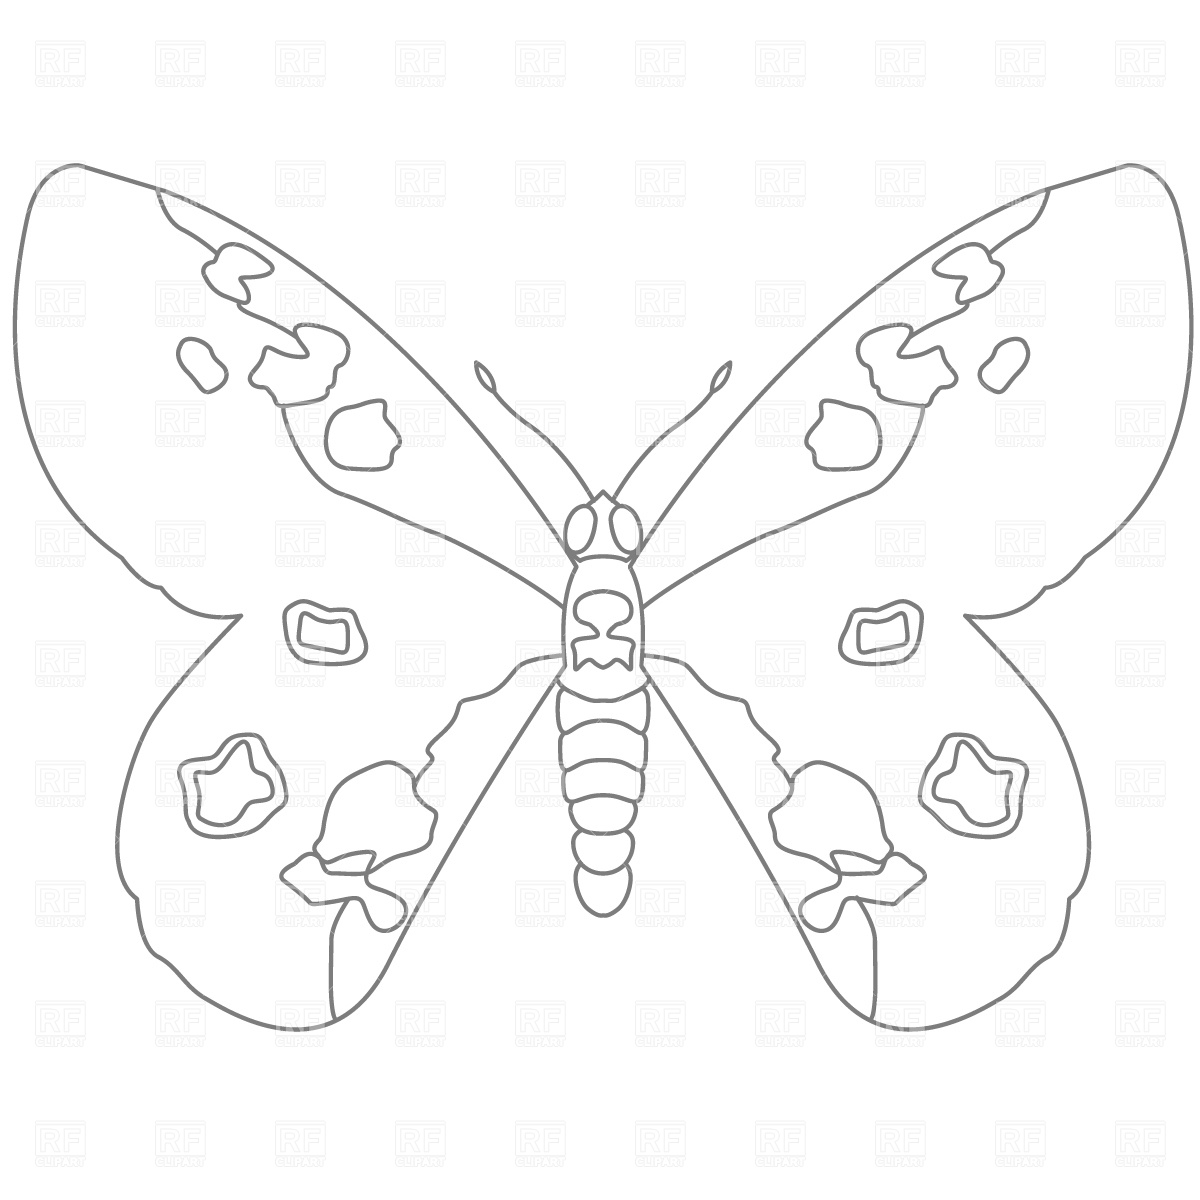 Free Butterfly Outlines Download Free Clip Art Free Clip Art On Clipart Library